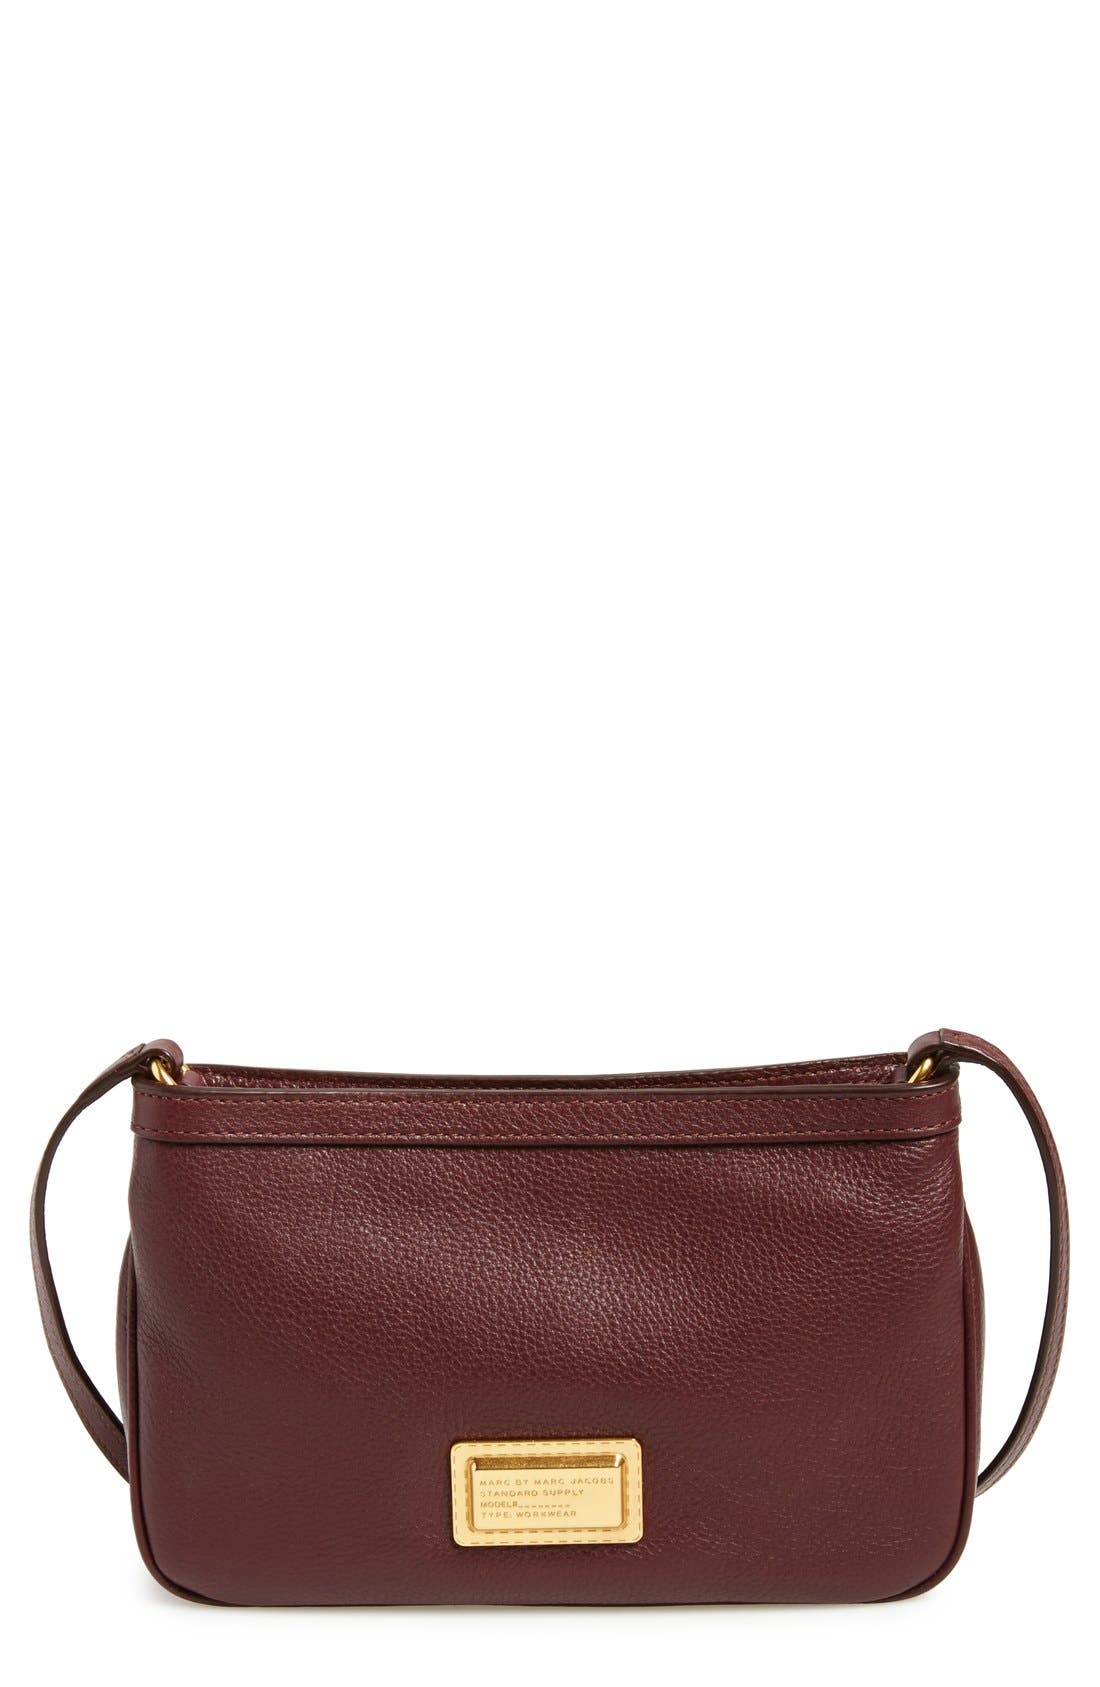 MARC BY MARC JACOBS 'Take Your Marc - Percy' Crossbody Bag,                         Main,                         color, Cardamom